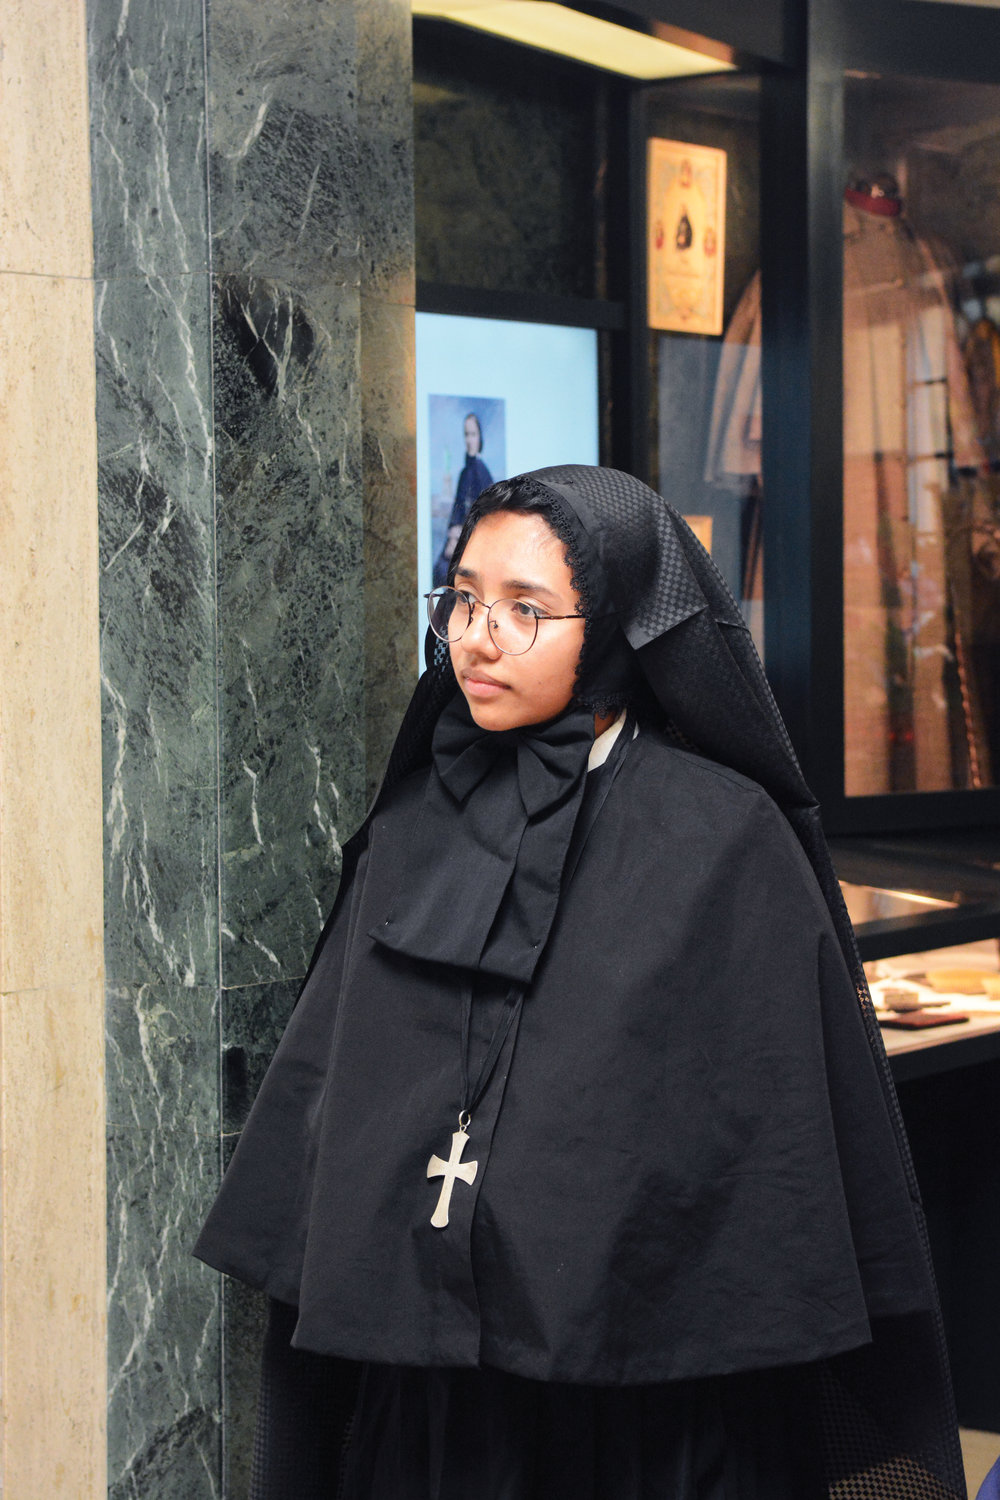 Bianca Huertas, dressed in period attire of Mother Cabrini's Missionary Sisters of the Sacred Heart of Jesus, was a perfect fit at a celebration marking the saint's 169th birthday July 13 at the Manhattan shrine named for her. Ms. Huertas, who was born in Guatemala, is in her first year of formation with the Cabrini Sisters.